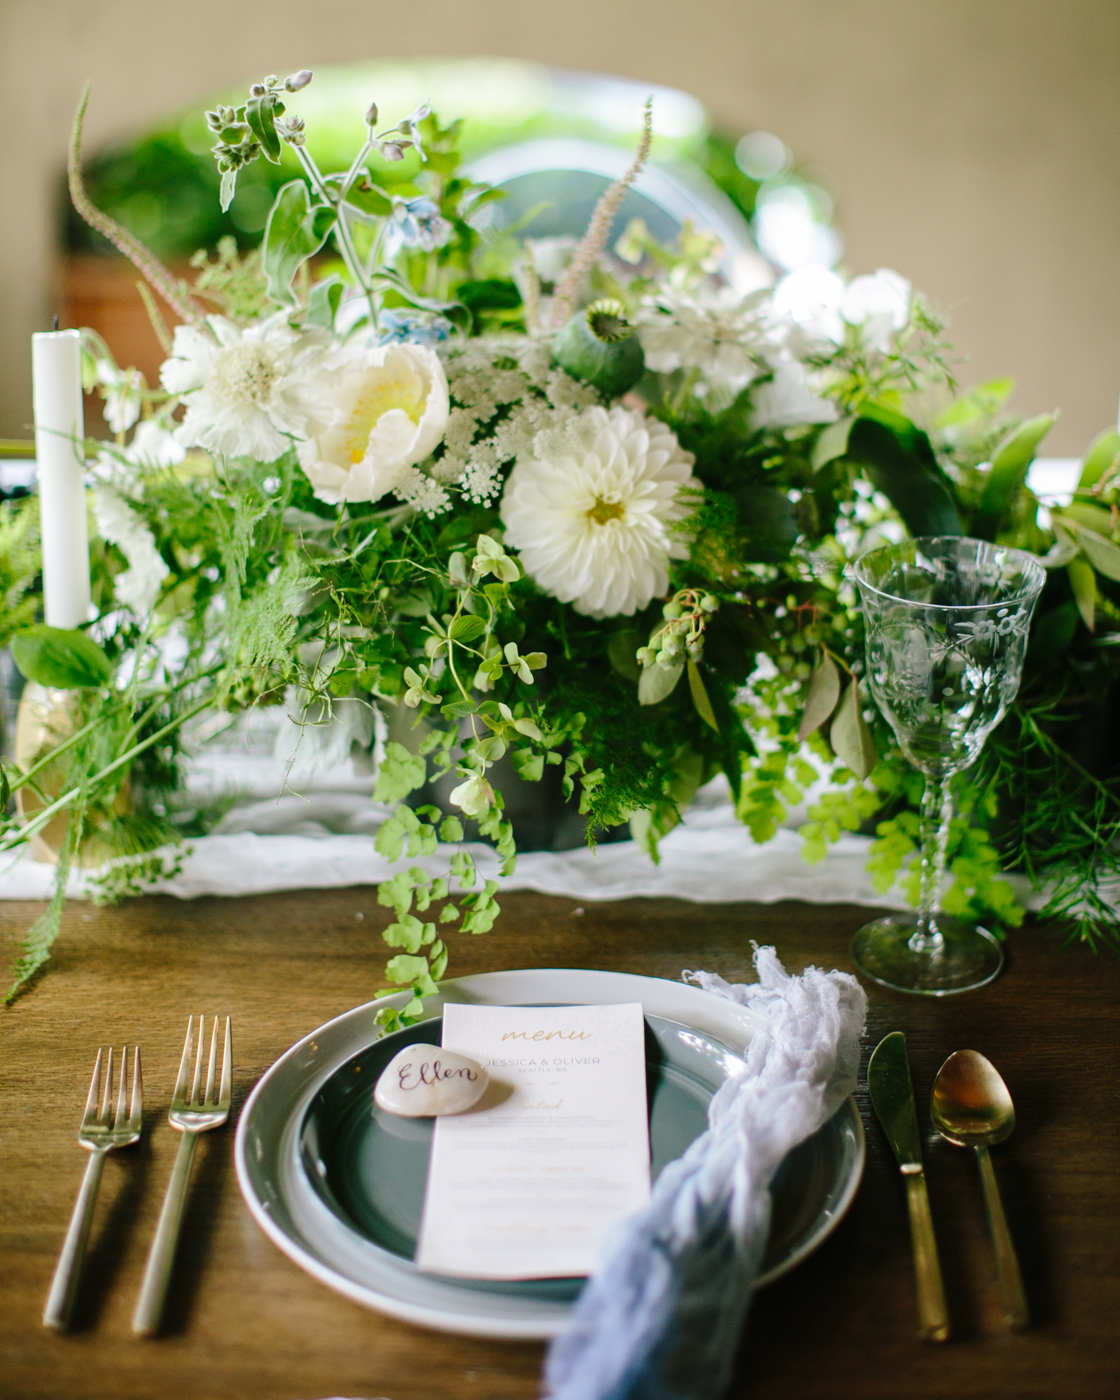 Wedding Planning Seattle | Wedding Wise | Delille Cellars | 2017 Pantone Color of the Year Greenery